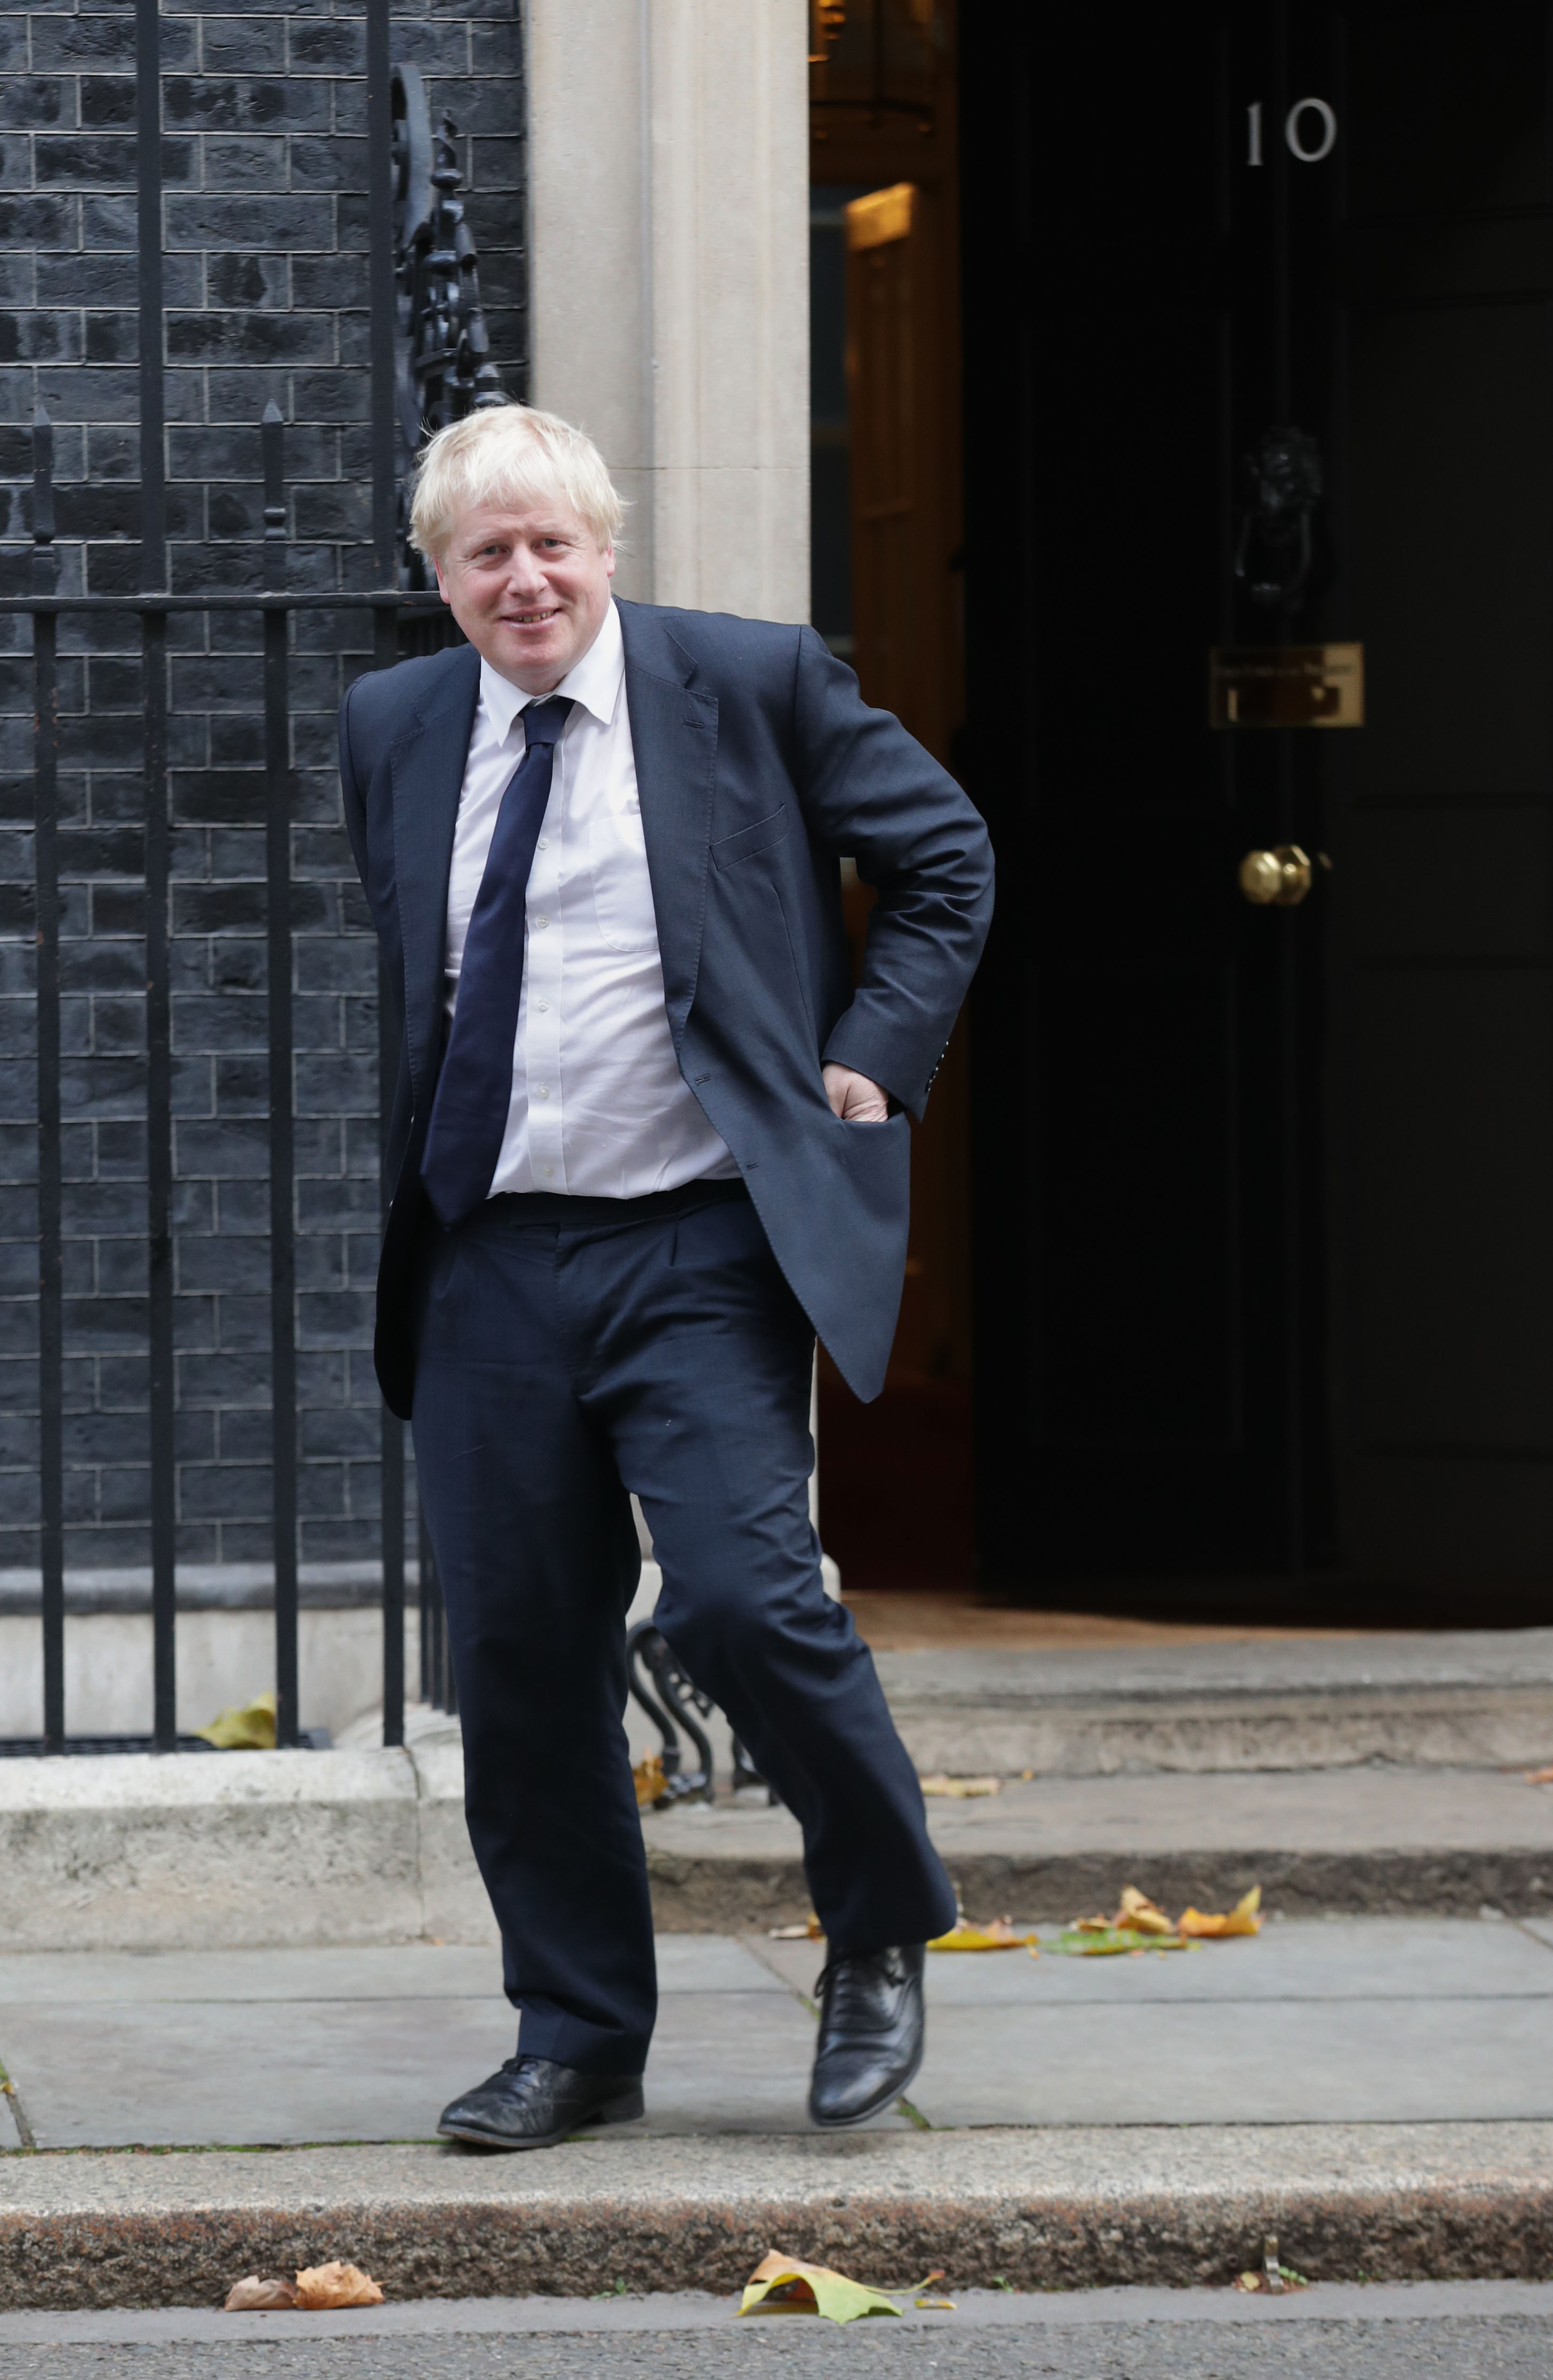 Foreign Secretary Boris Johnson leaving Downing Street, London, after a pre-Budget Cabinet meeting.